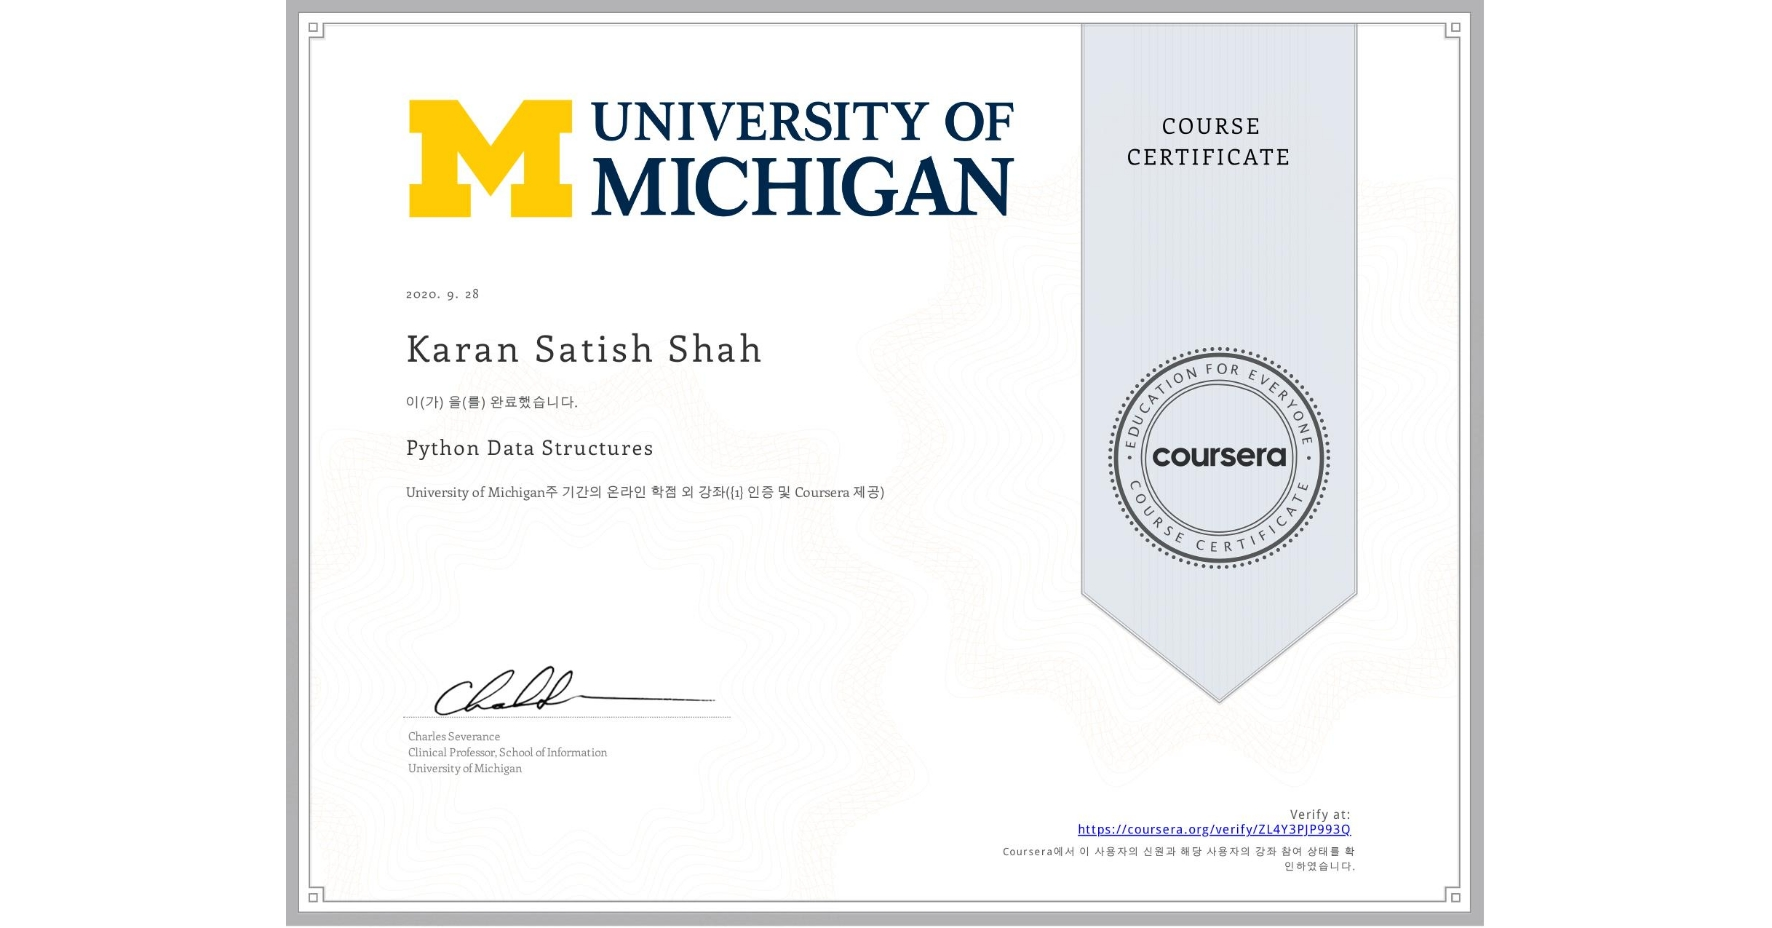 View certificate for Karan Satish Shah, Python Data Structures, an online non-credit course authorized by University of Michigan and offered through Coursera